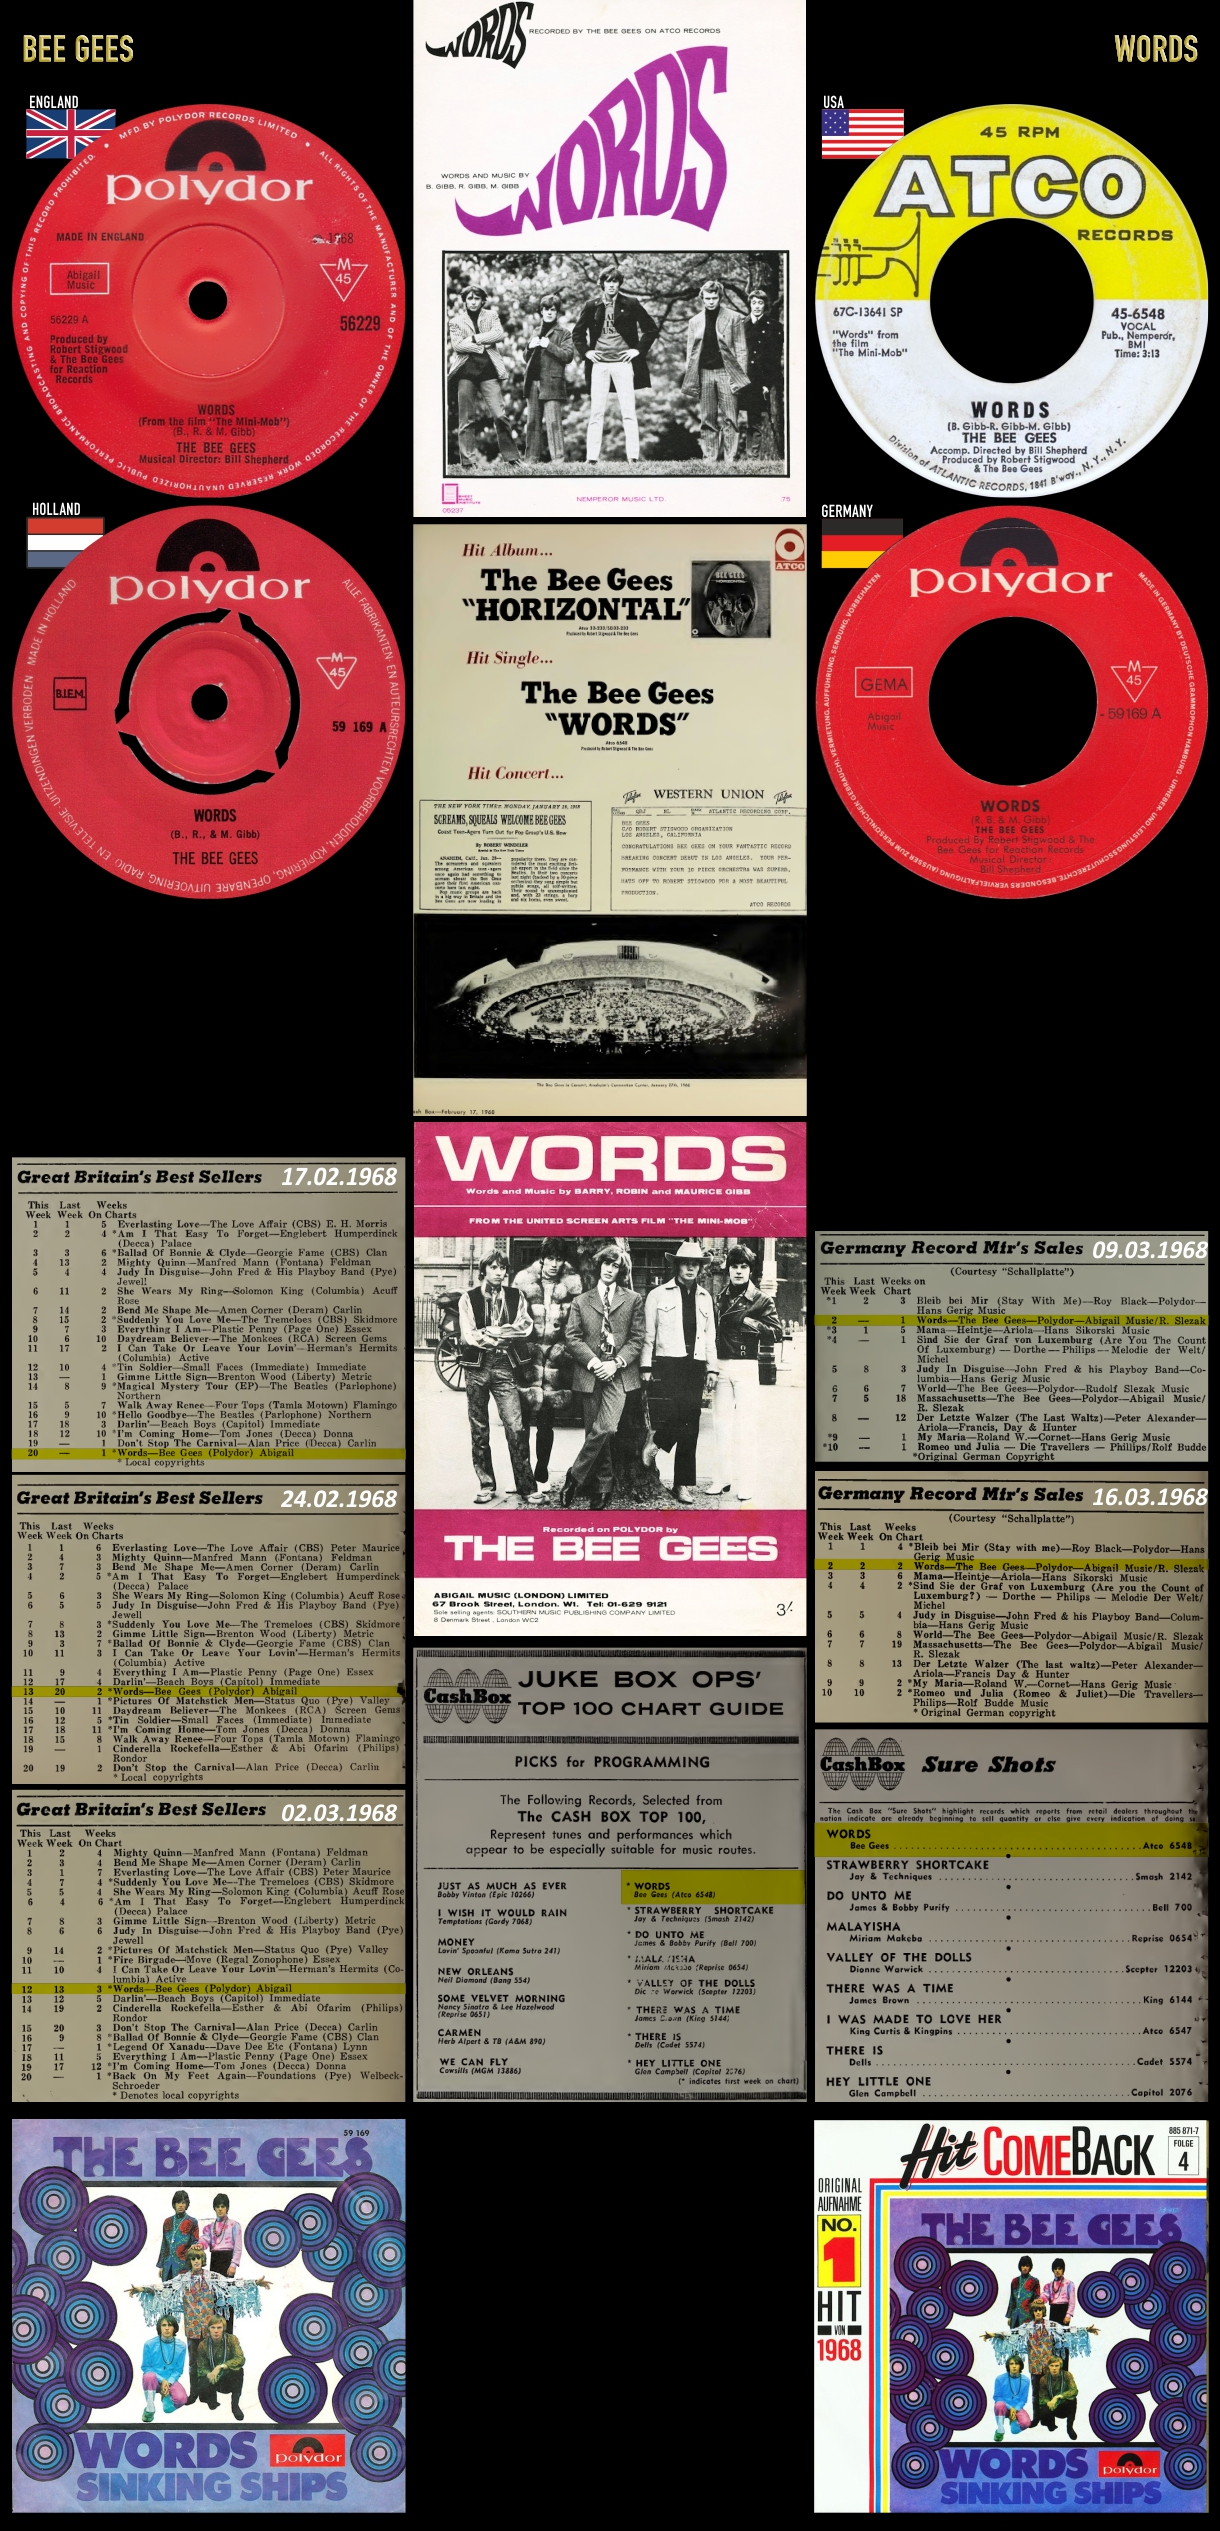 680120_Bee Gees_Words